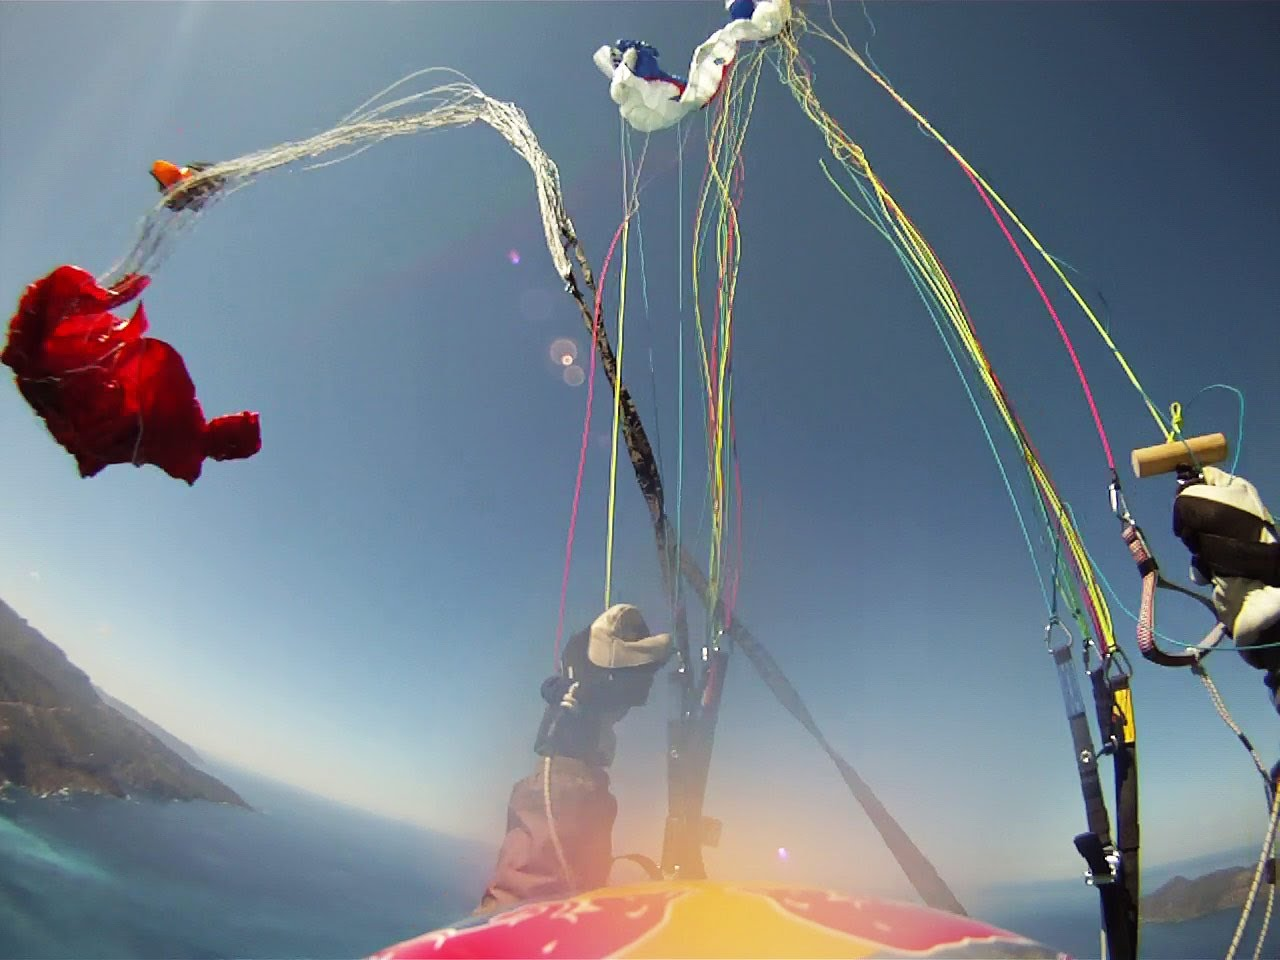 Paraglider tandem acro test flight gone bad - spectacular